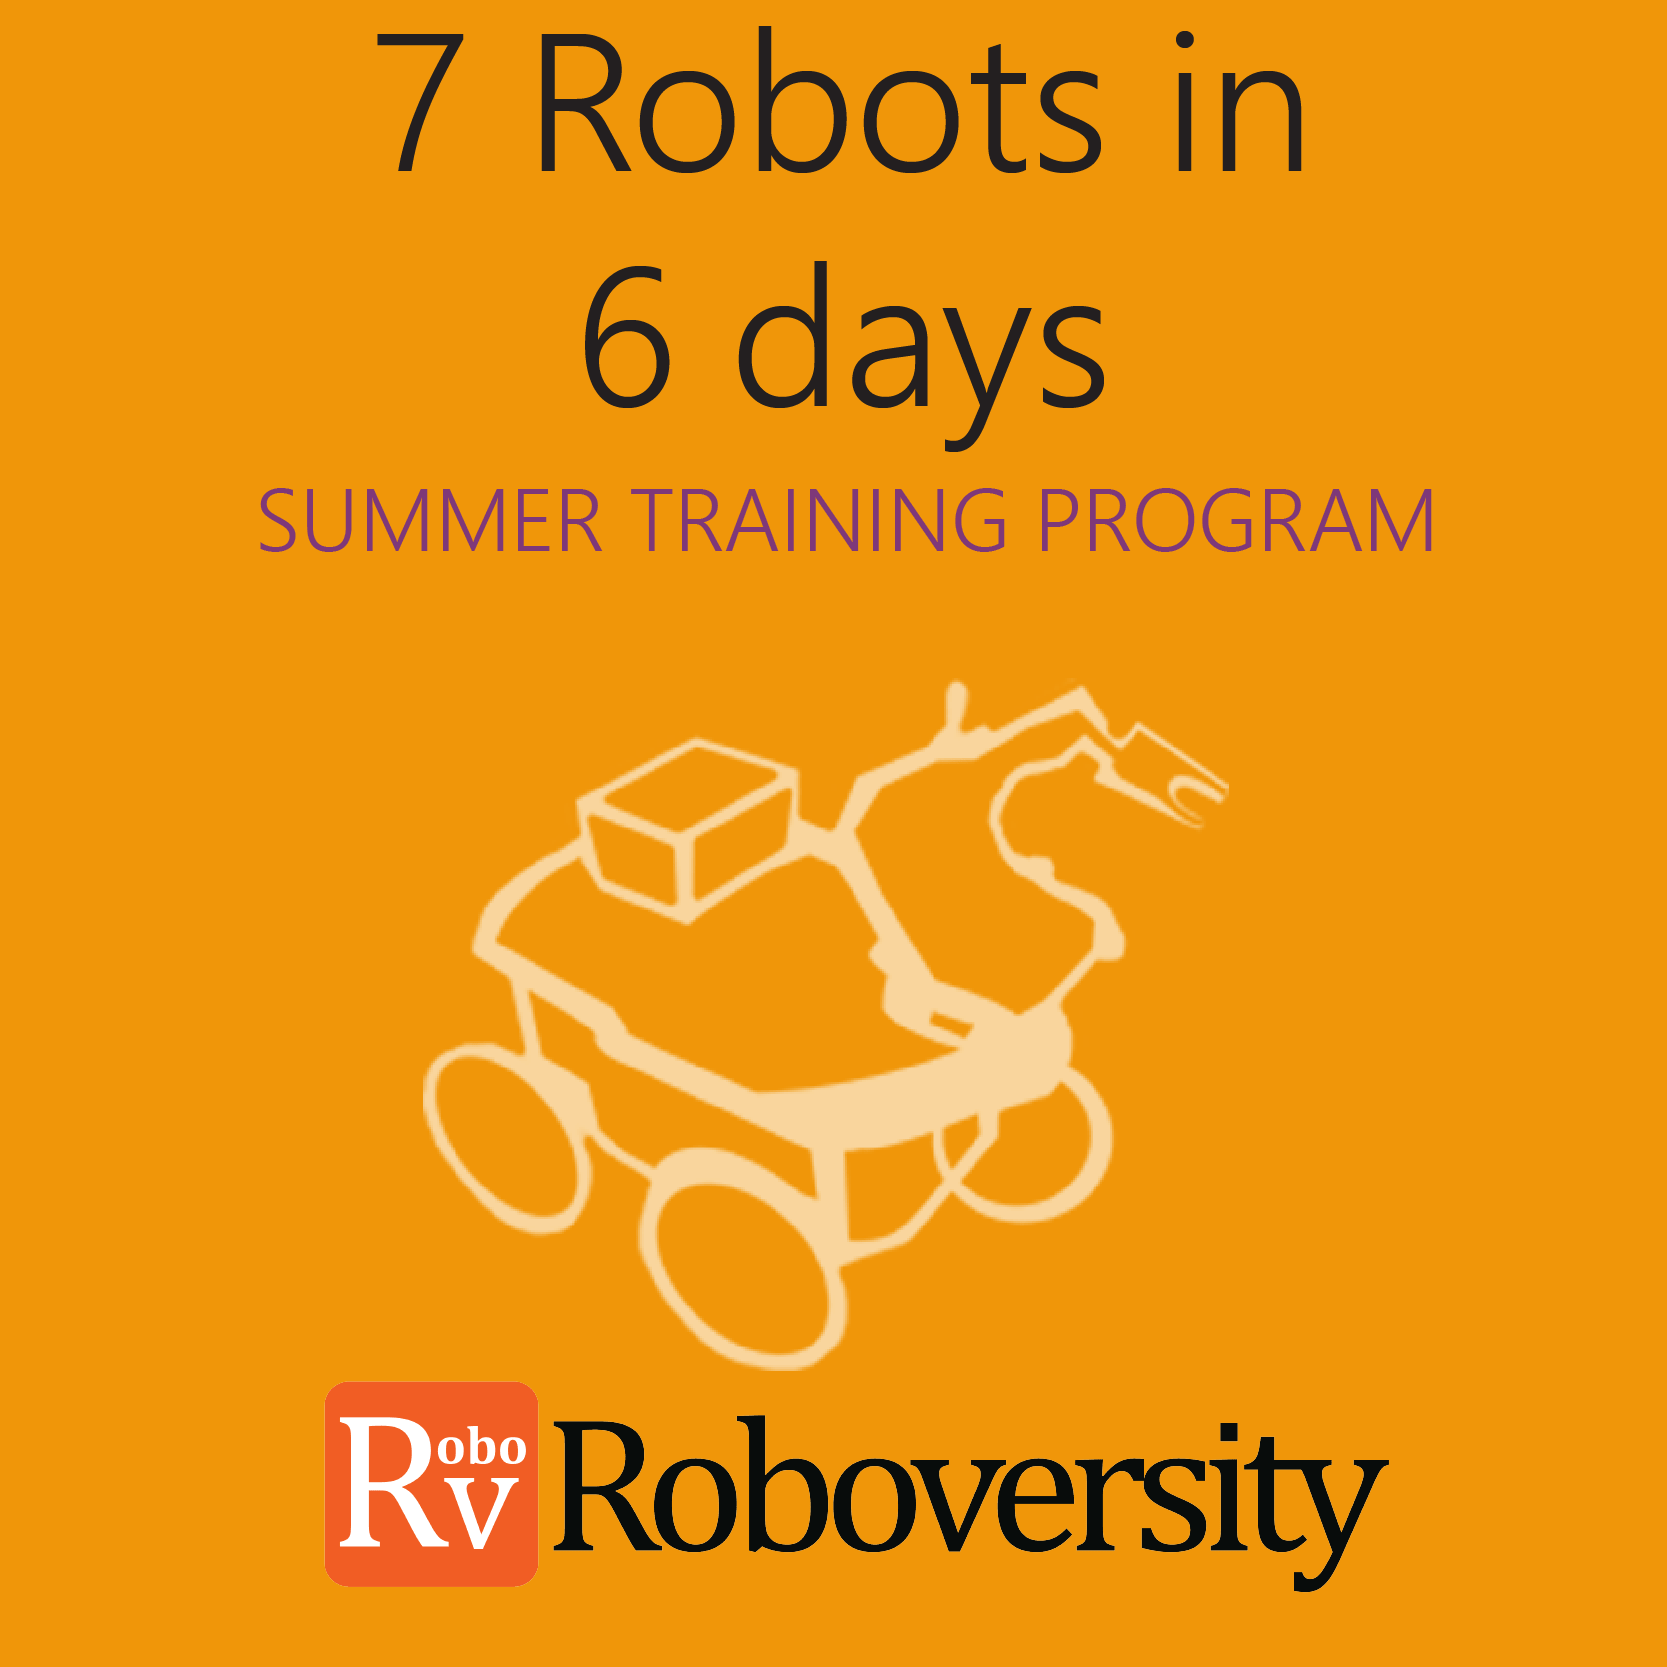 Summer Training Program in Robotics - 7 Robots in 6 Days  at Skyfi Labs Center, Gateforum, Near Saket Metro station Workshop